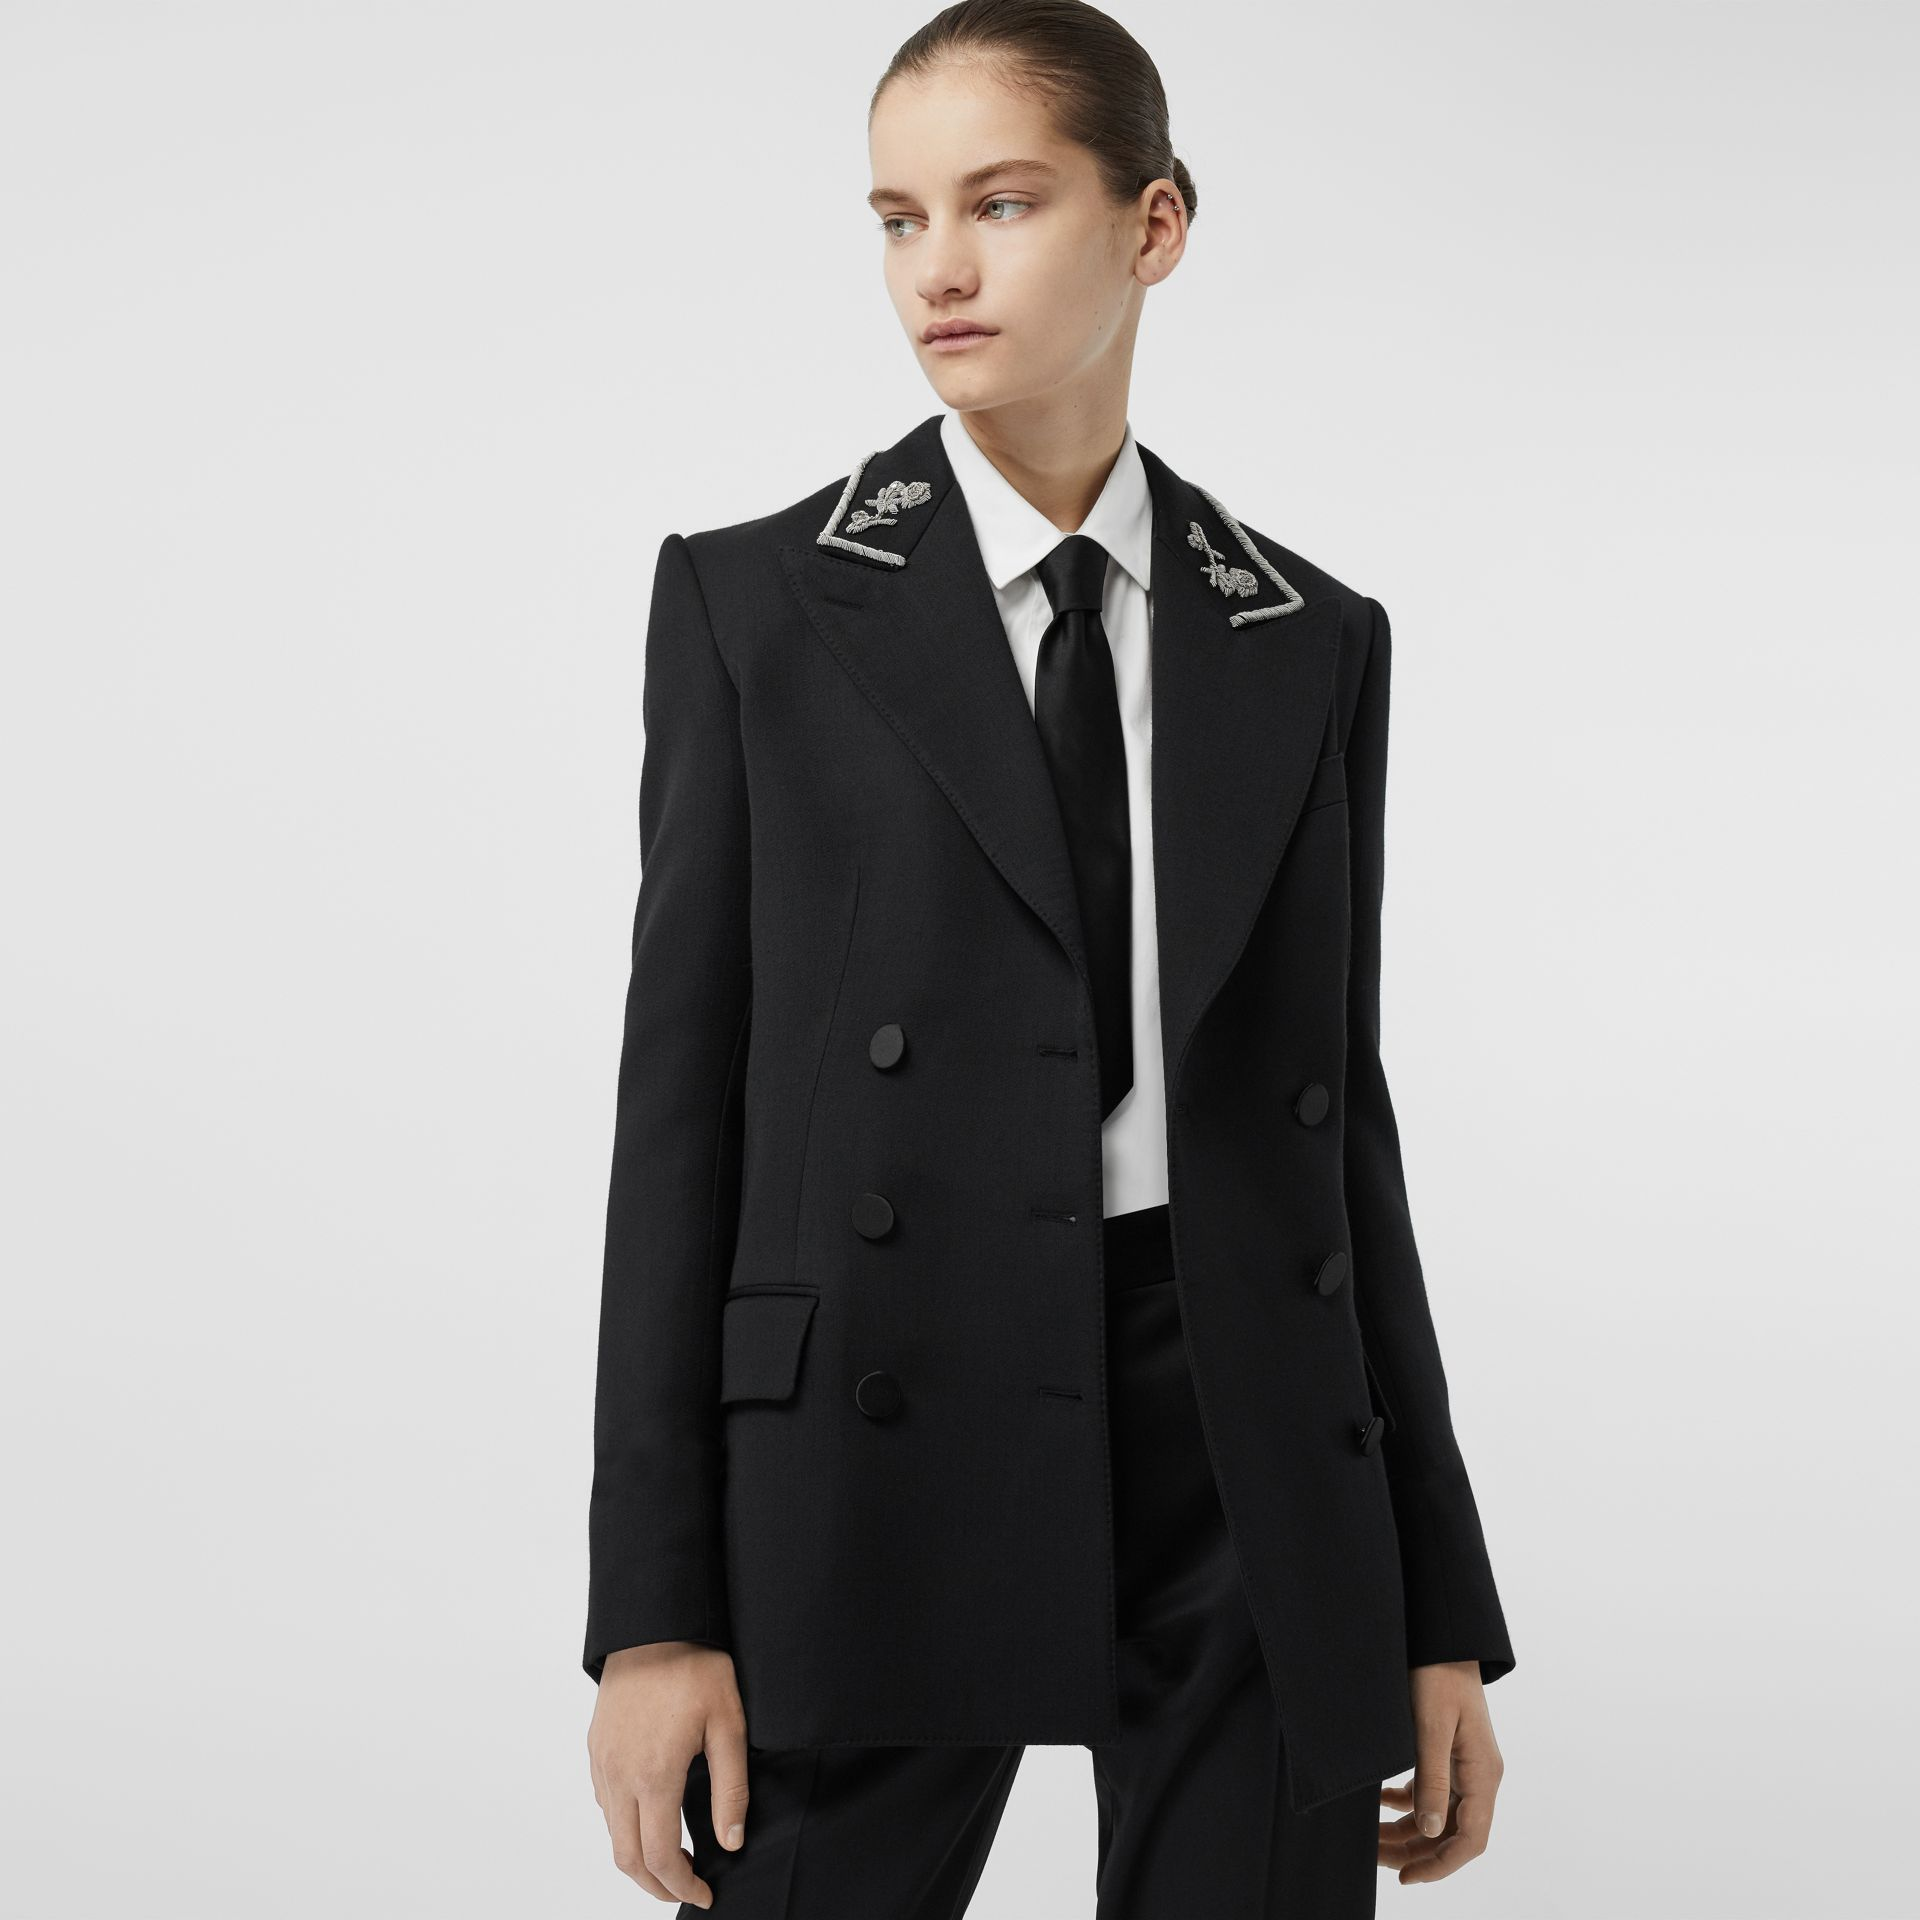 Bullion Stretch Wool Double-breasted Jacket in Black - Women | Burberry United States - gallery image 4